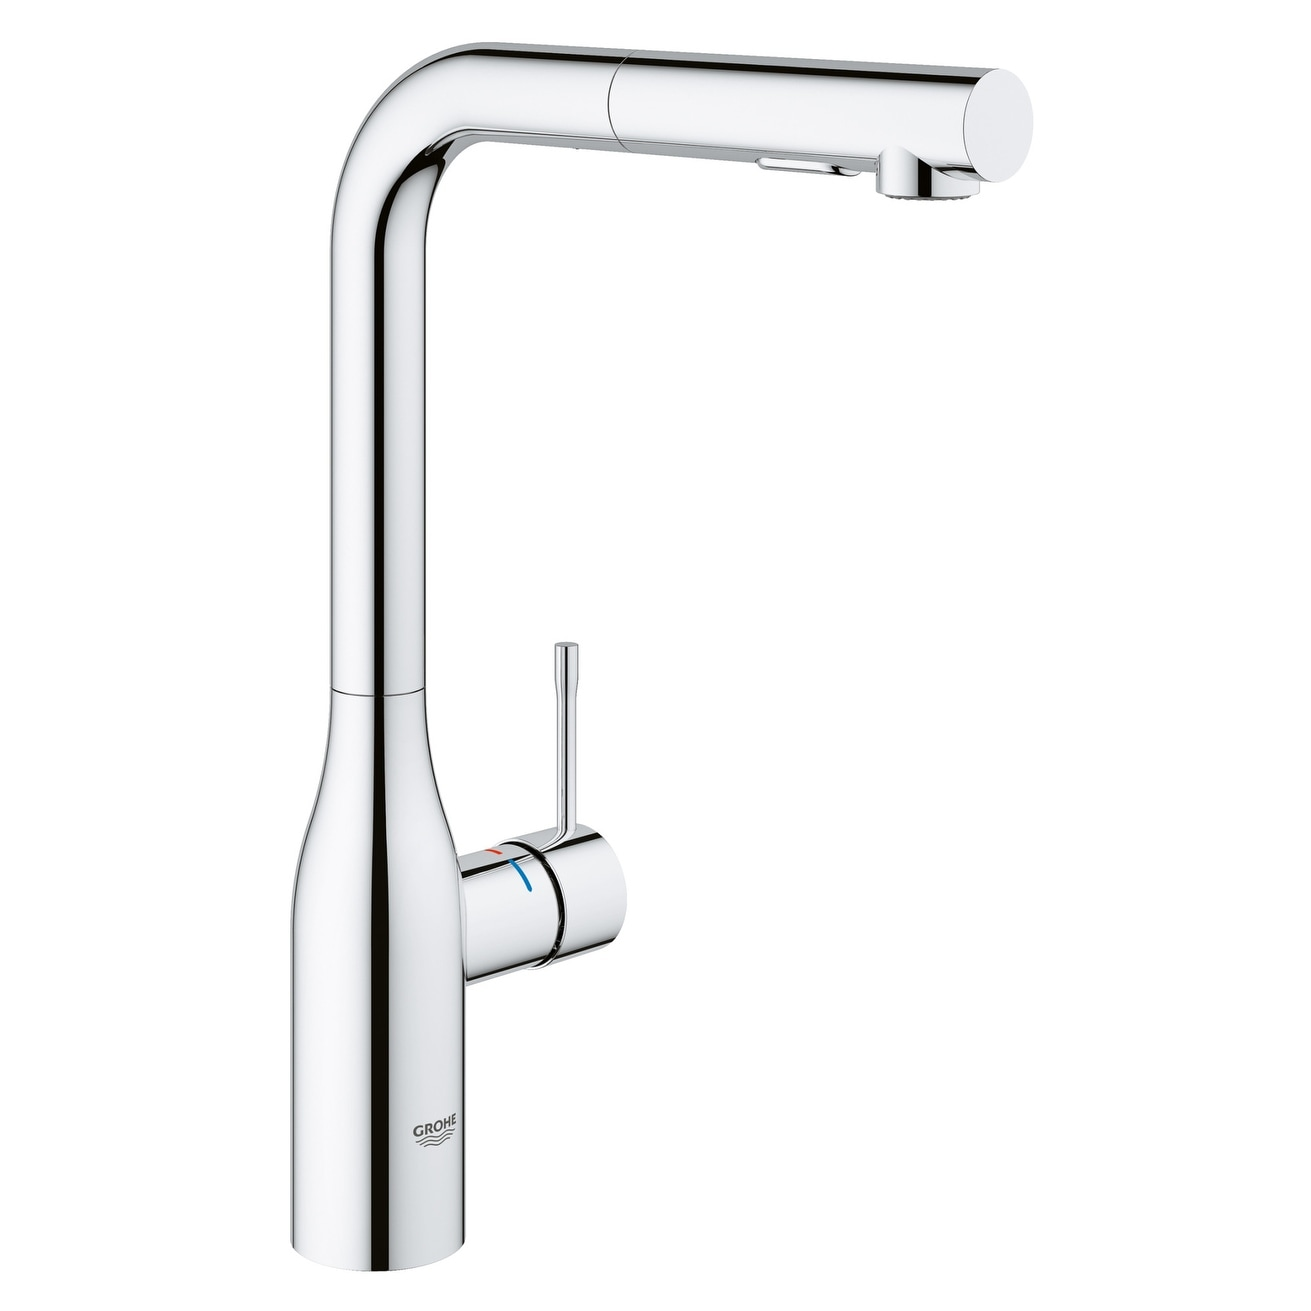 Grohe Duschpaneel Grohe Although There Is A Strong Emphasis On Quality Within The